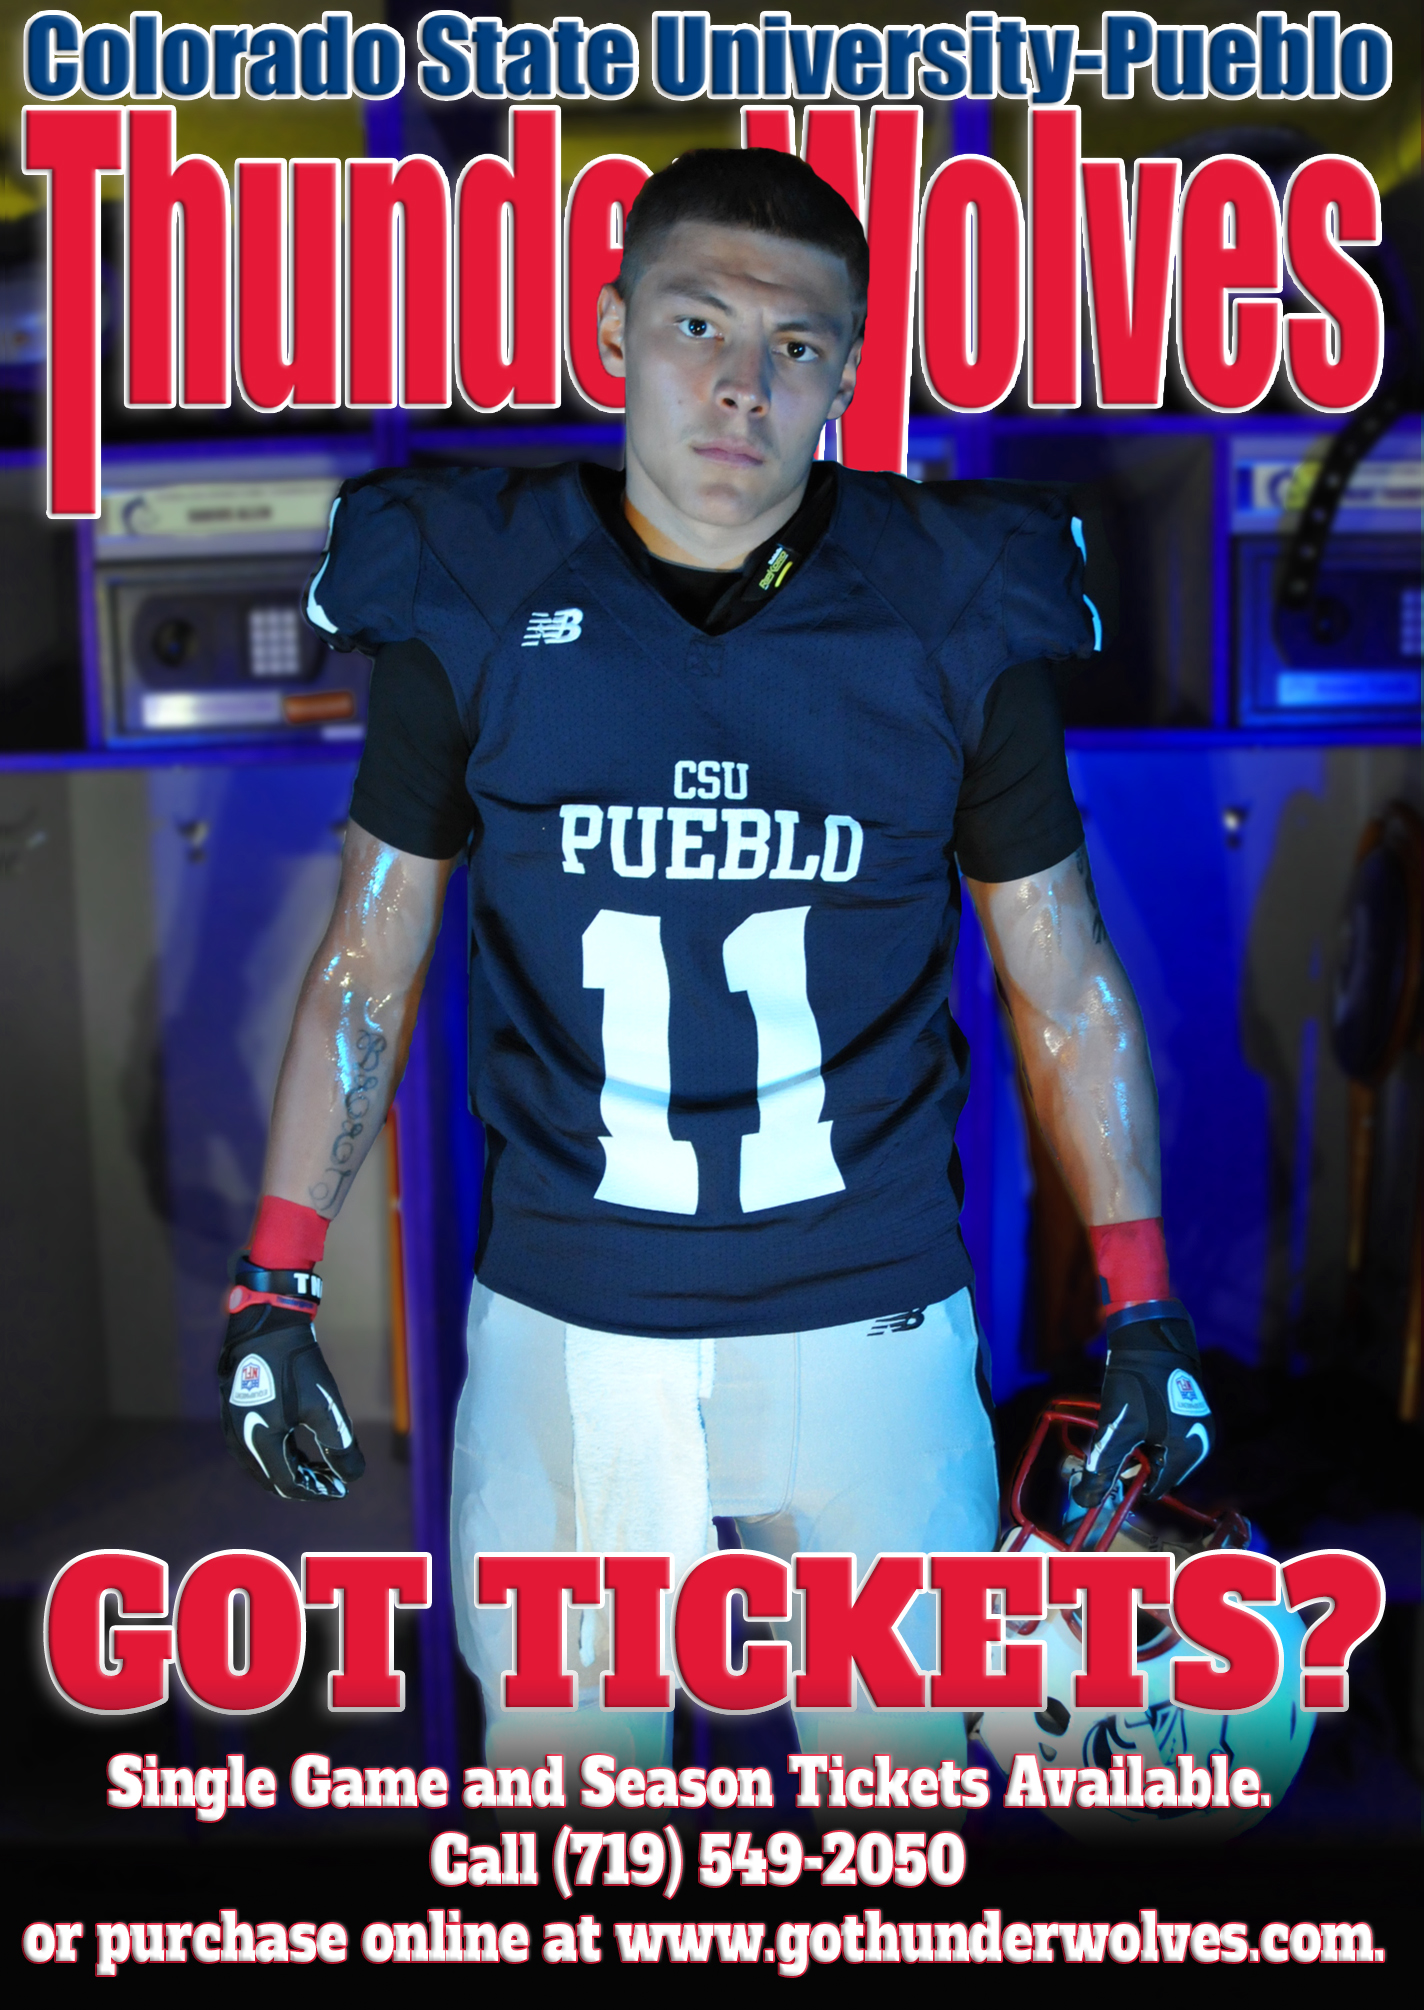 Josh Sandoval Ticket Ad